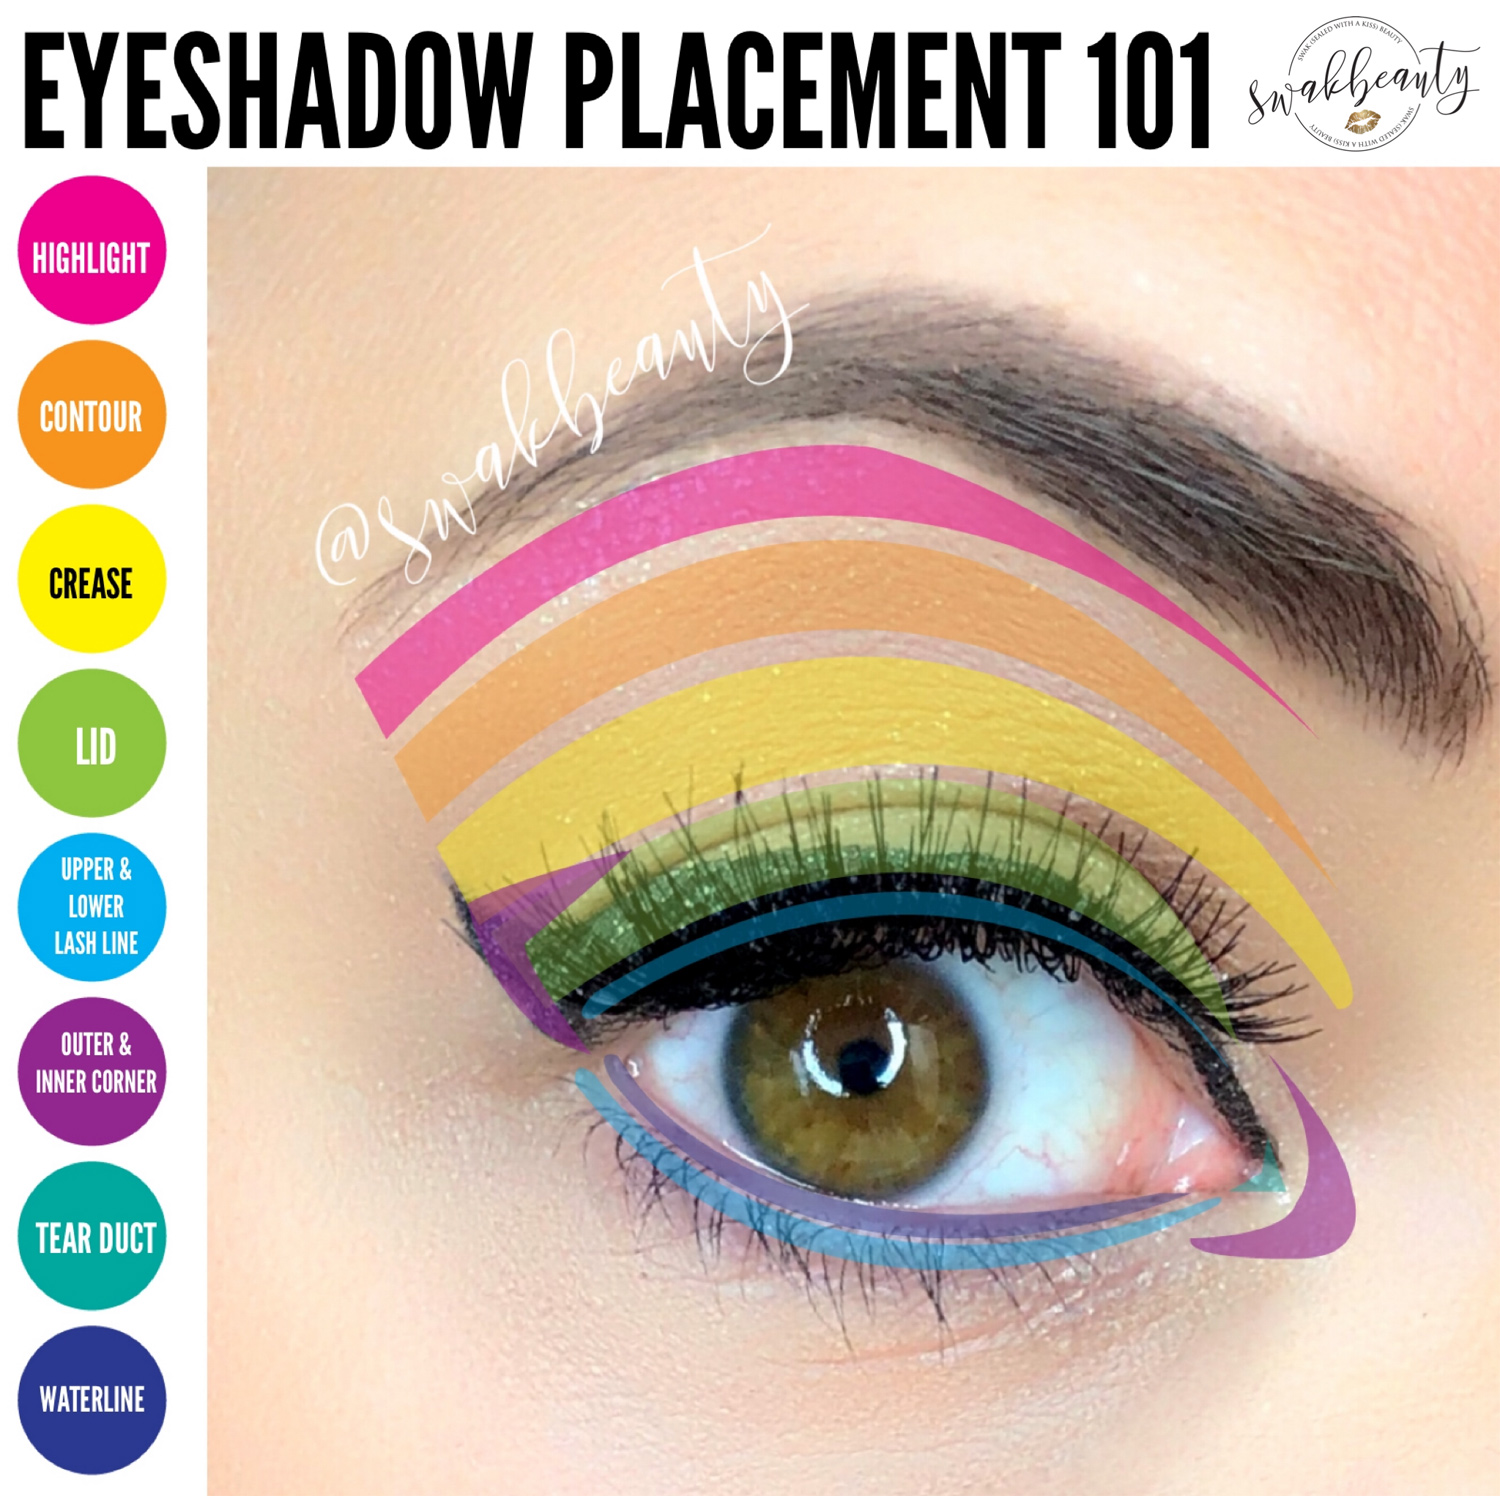 Eyeshadow Placement 101